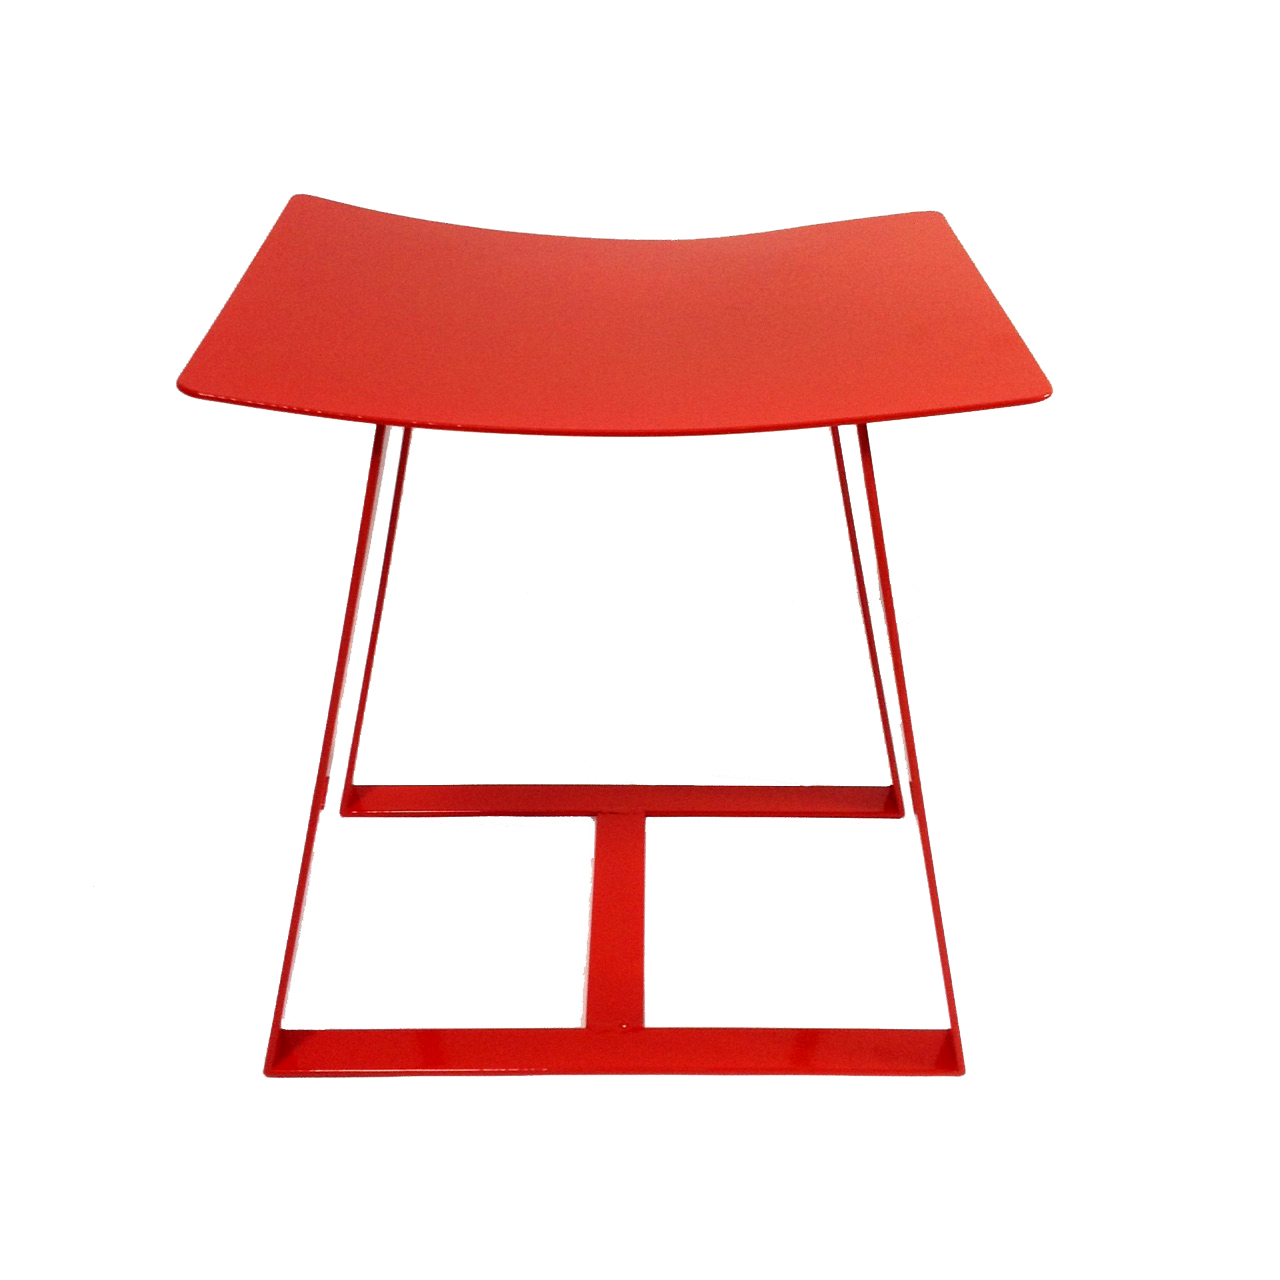 The H Stool